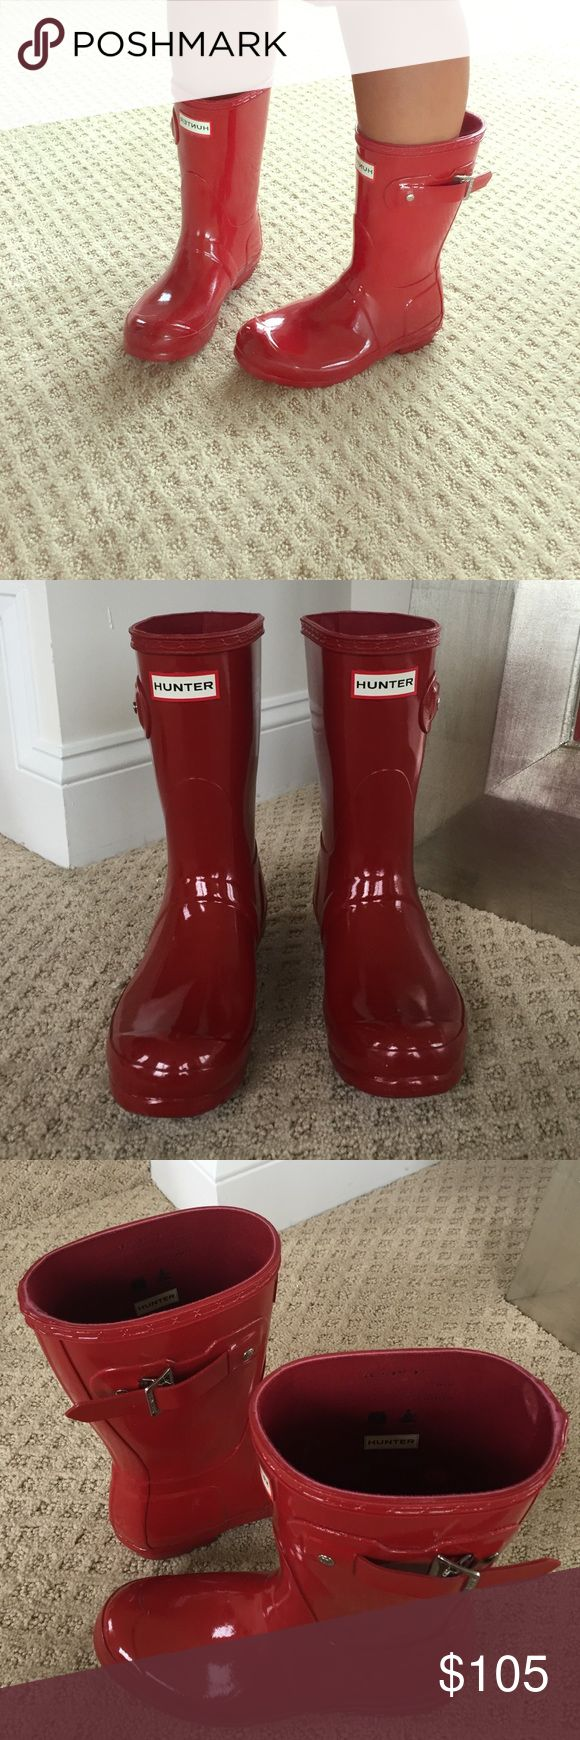 HUNTER BOOTS Short Red Wellies Rainboots Used once. Practically new. No box. Size 6 US. Hunter Boots Shoes Winter & Rain Boots